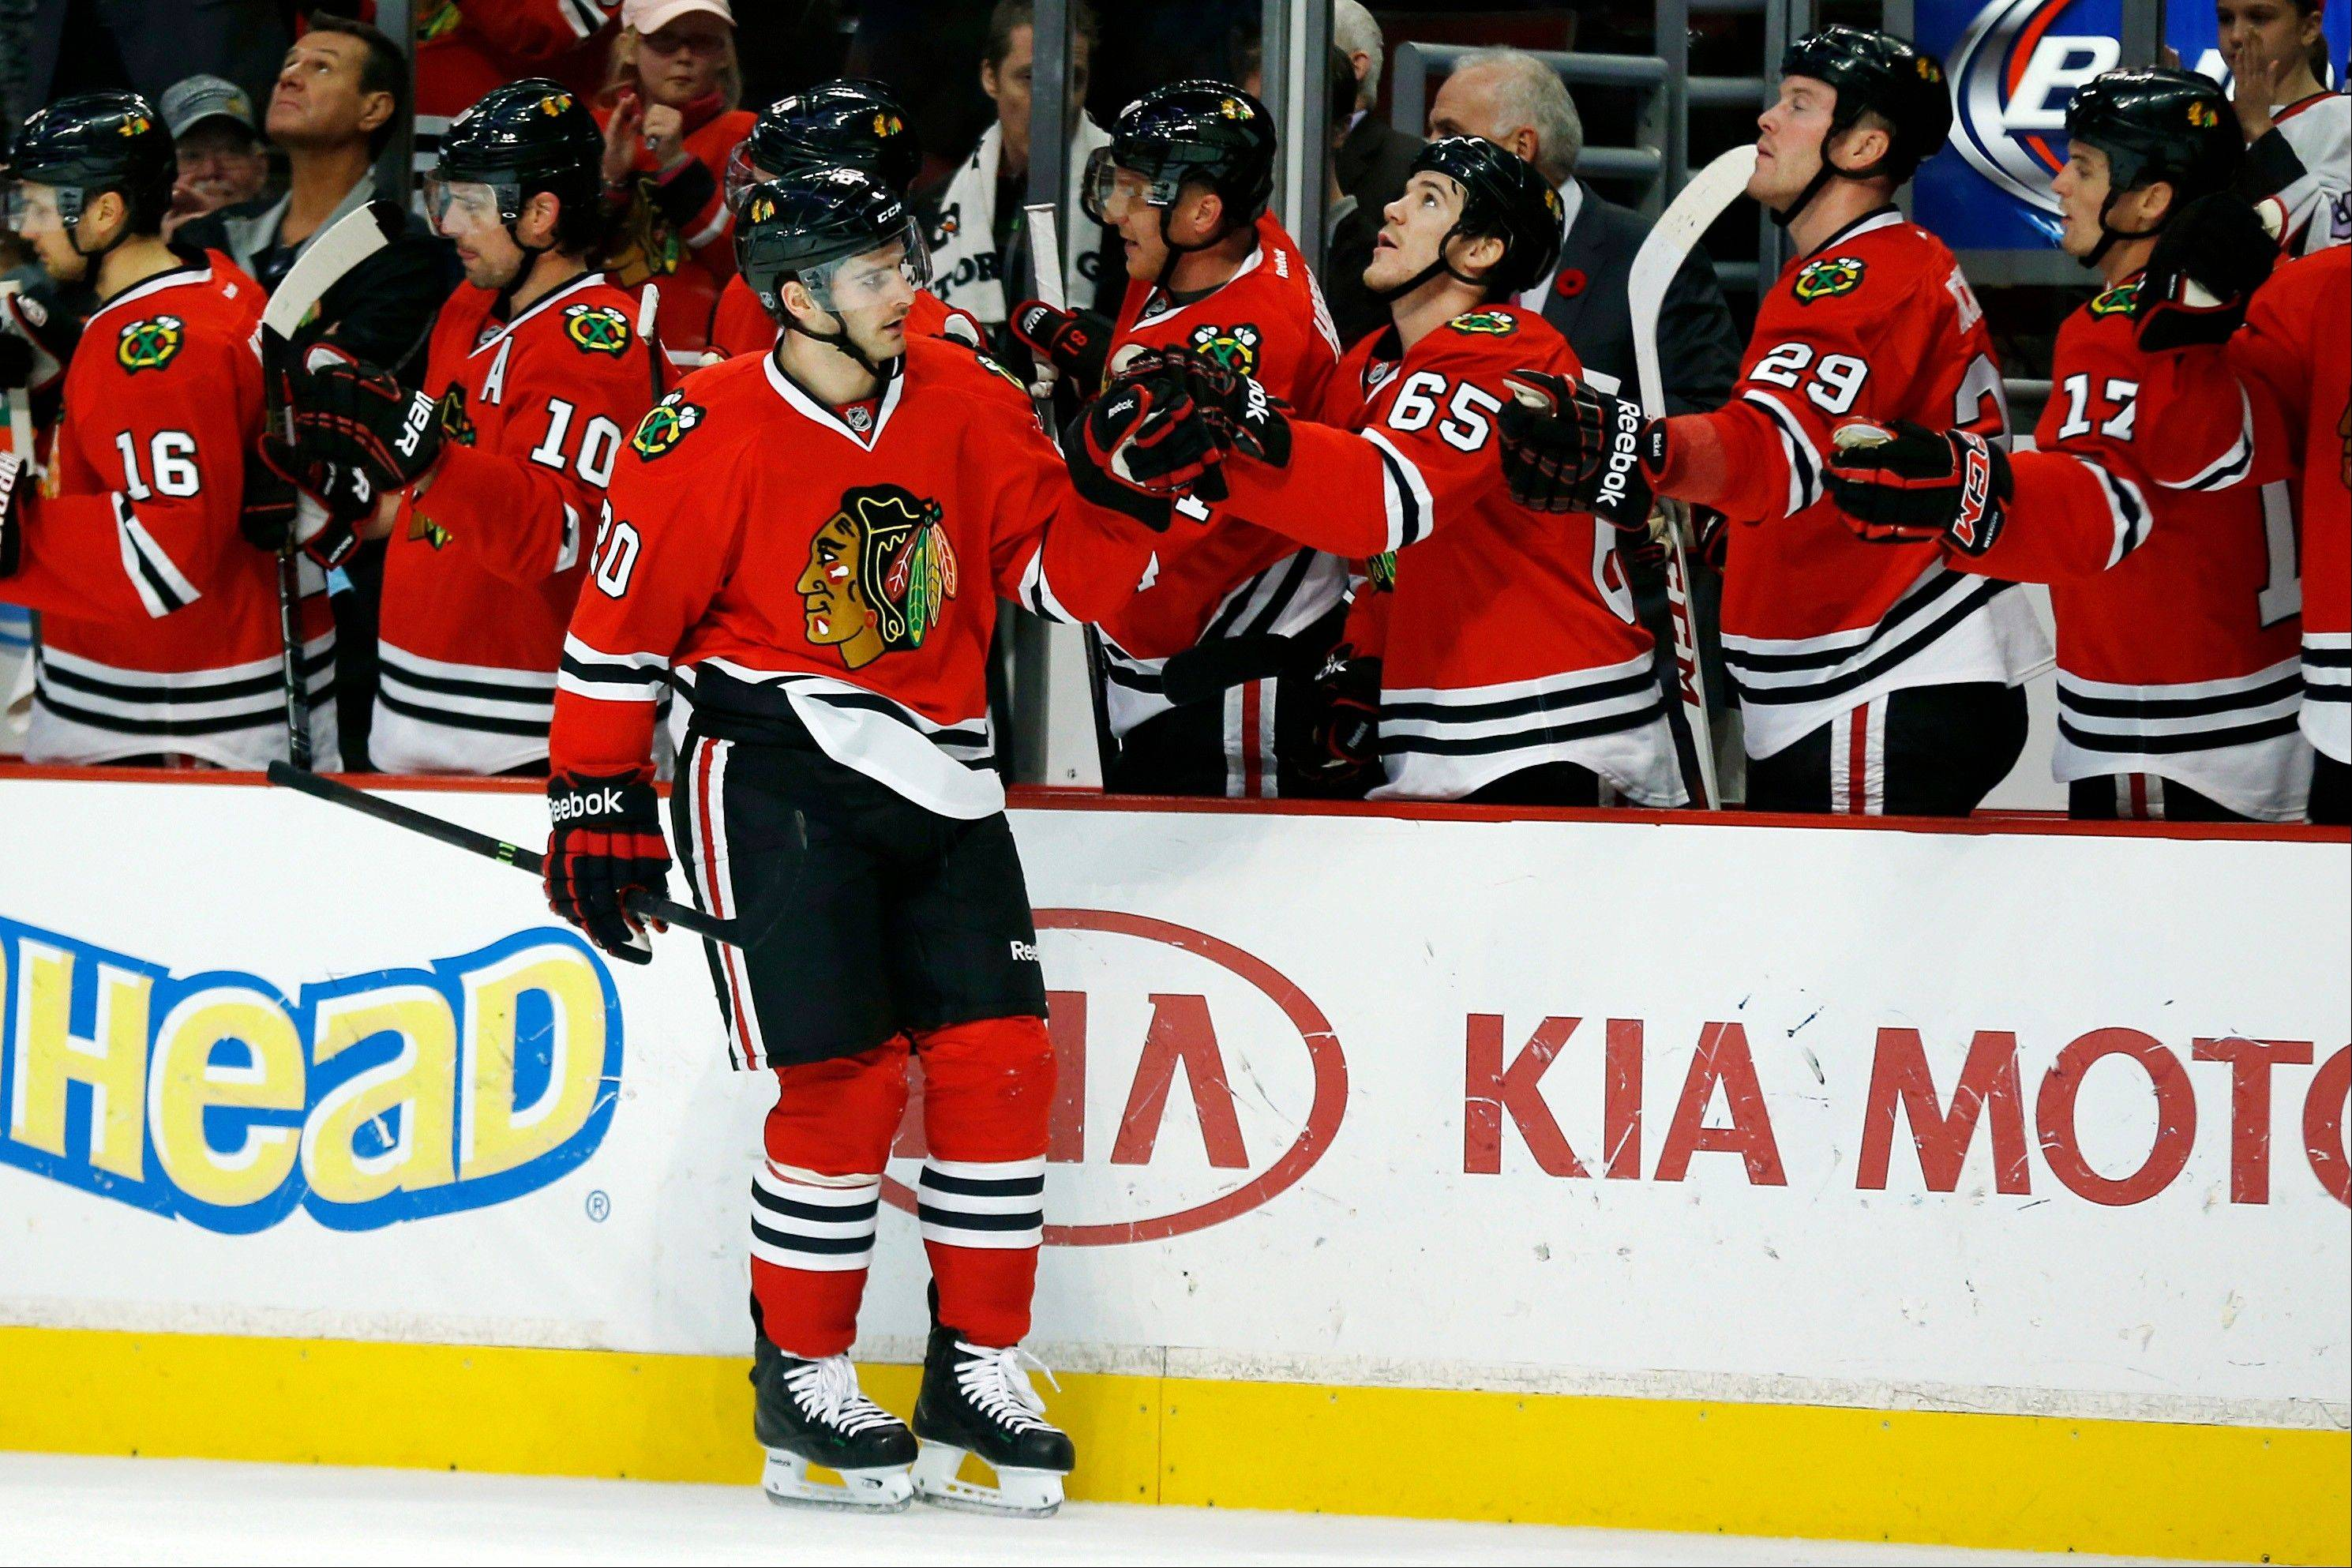 The Blackhawks� Brandon Saad celebrates after scoring a goal in Sunday�s 5-4 victory over the Edmonton Oilers at the United Center.